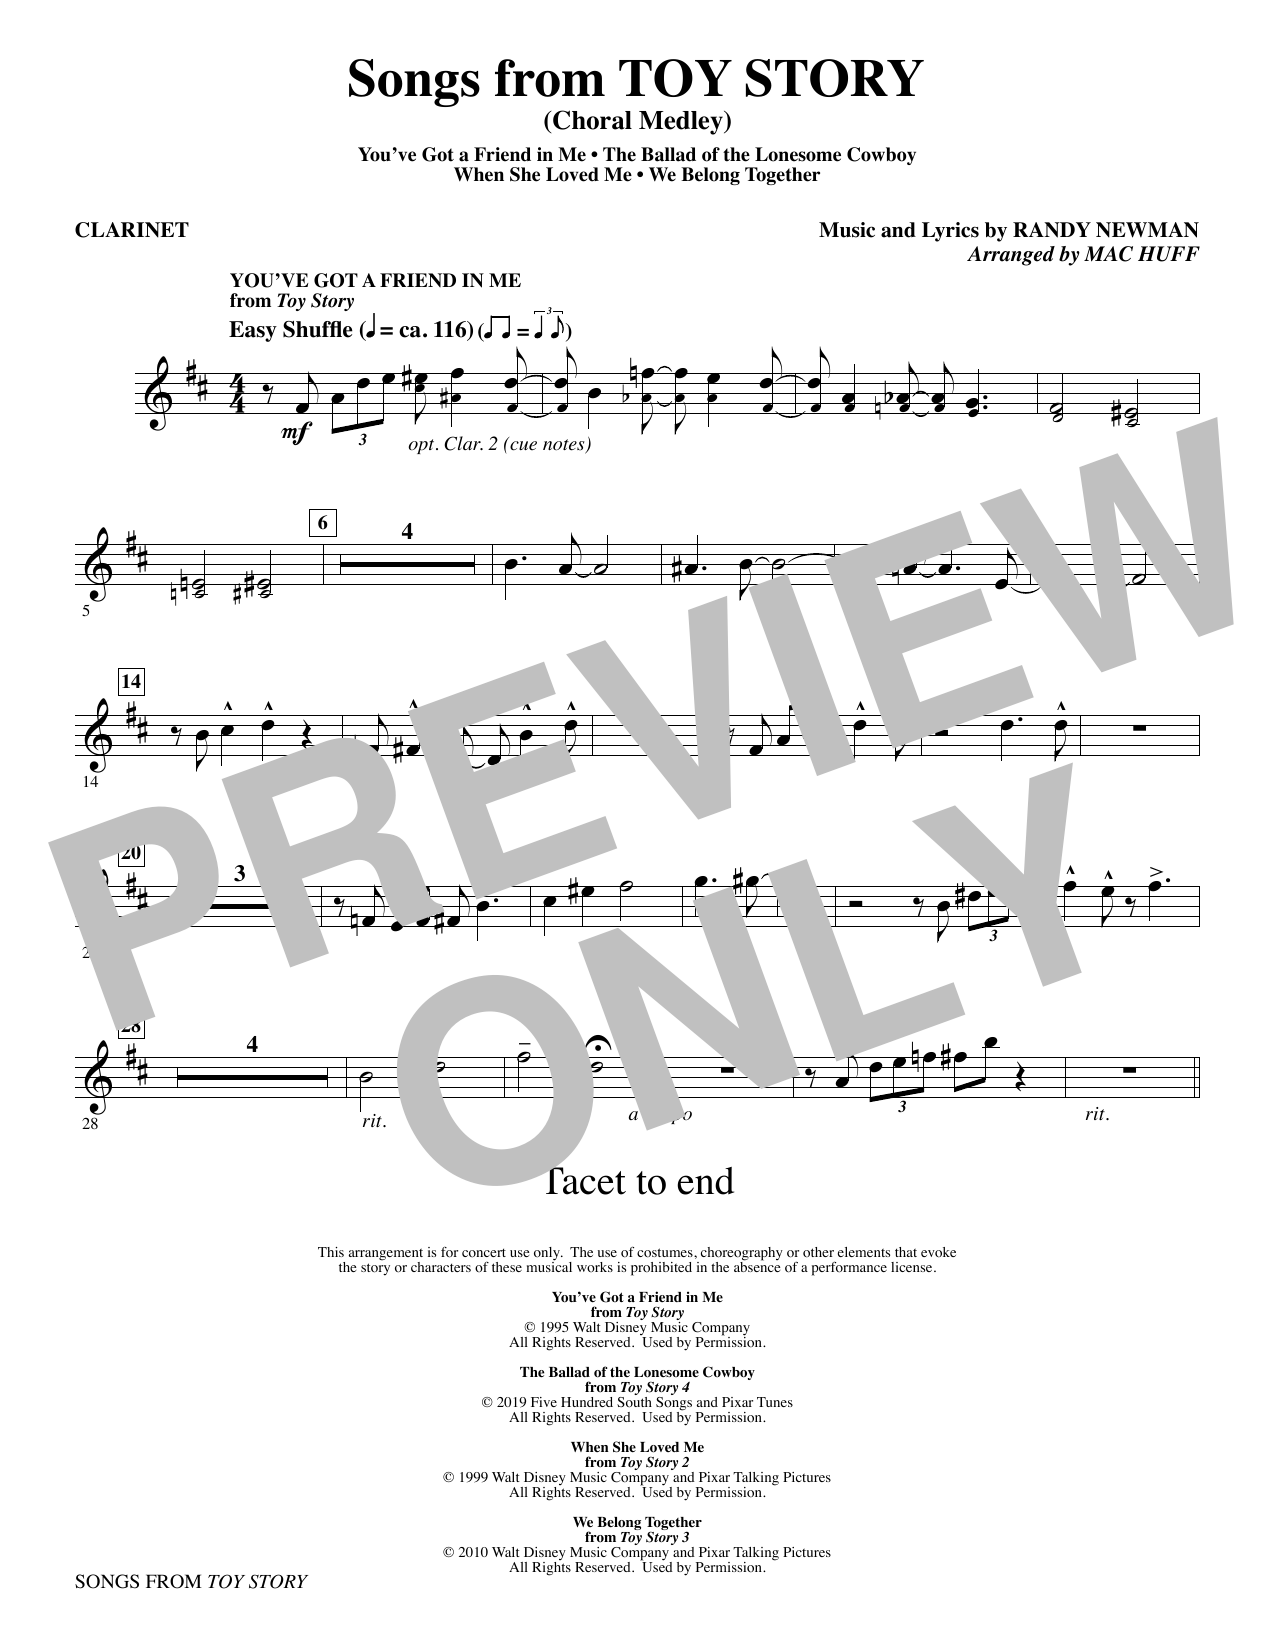 Songs from Toy Story (Choral Medley) (arr. Mac Huff) - Clarinet Sheet Music